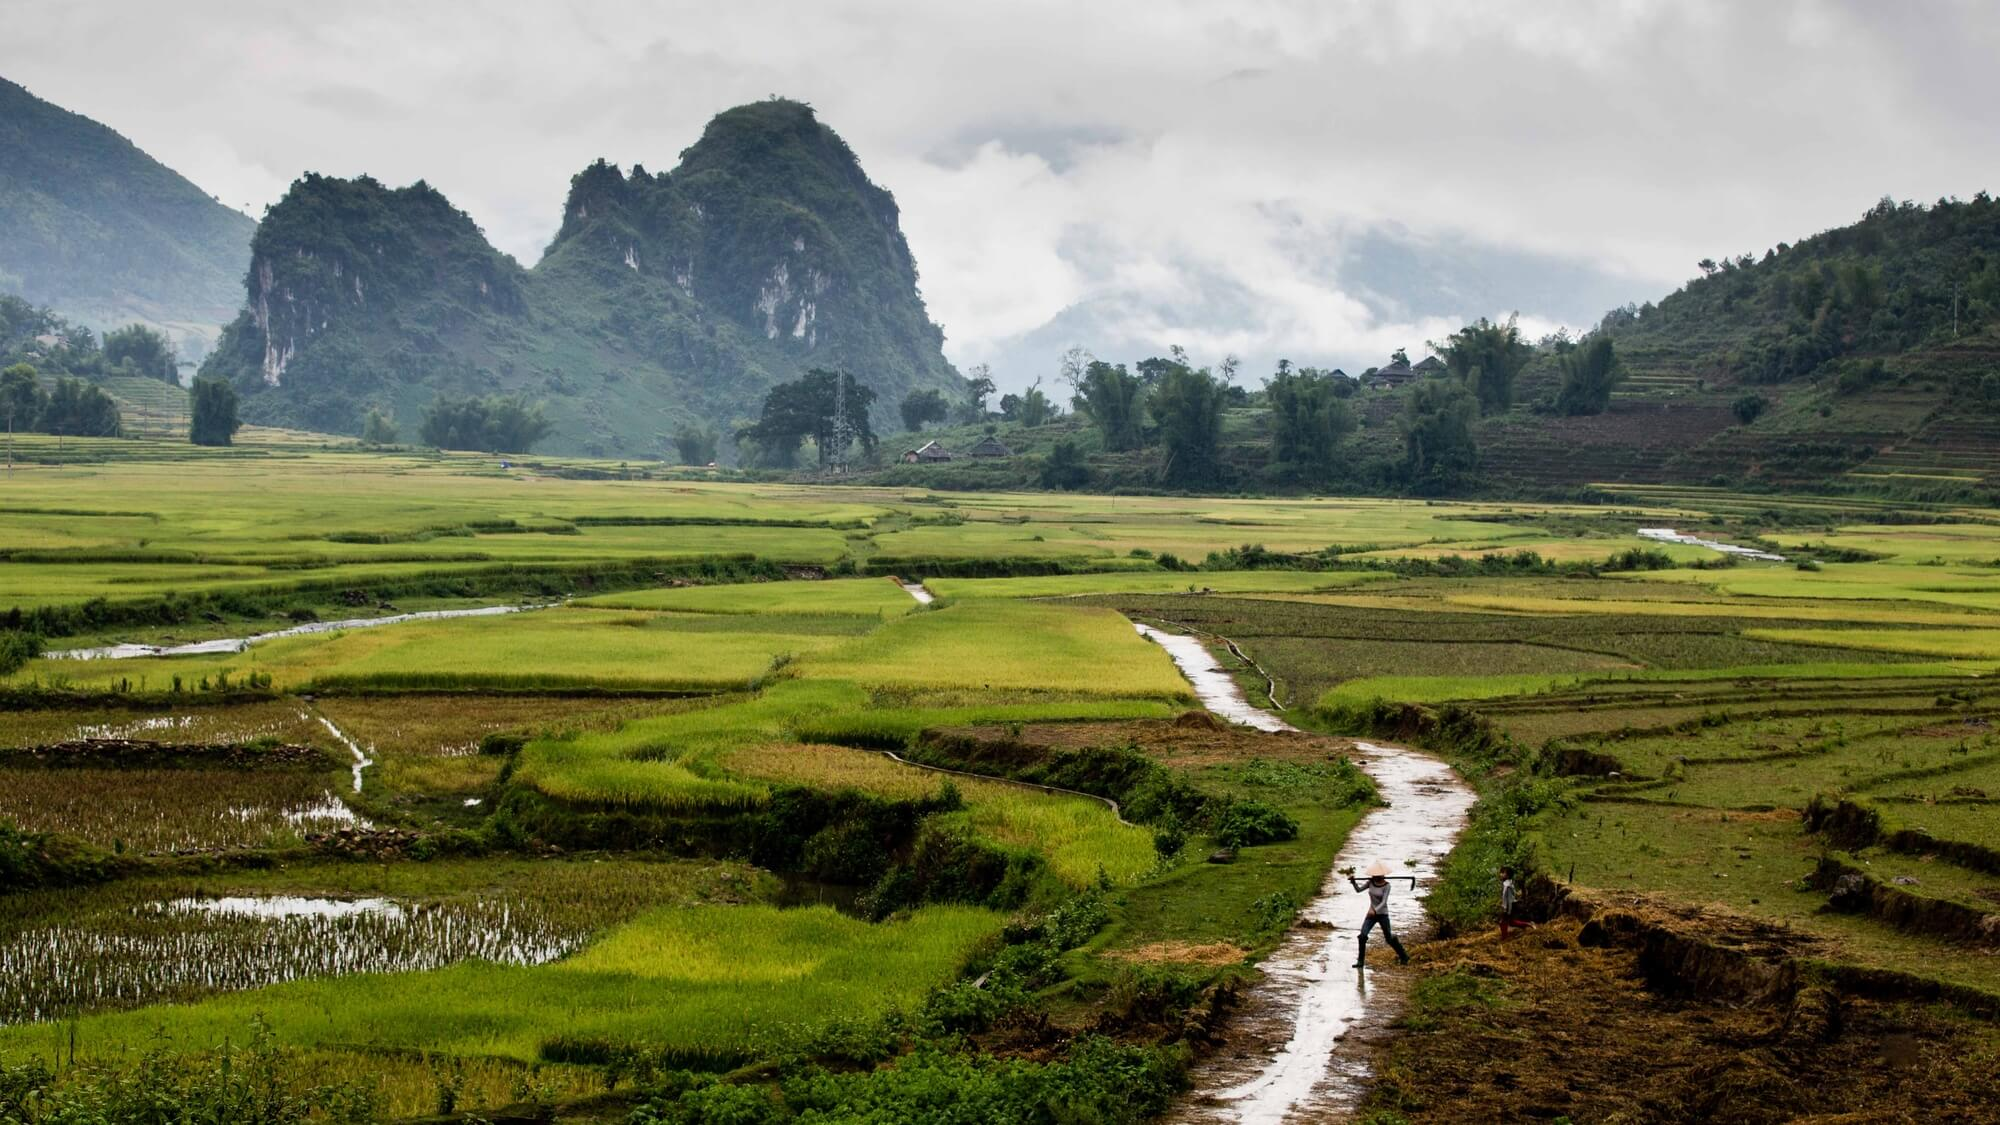 North Vietnam mountain valley landscape with rice worker